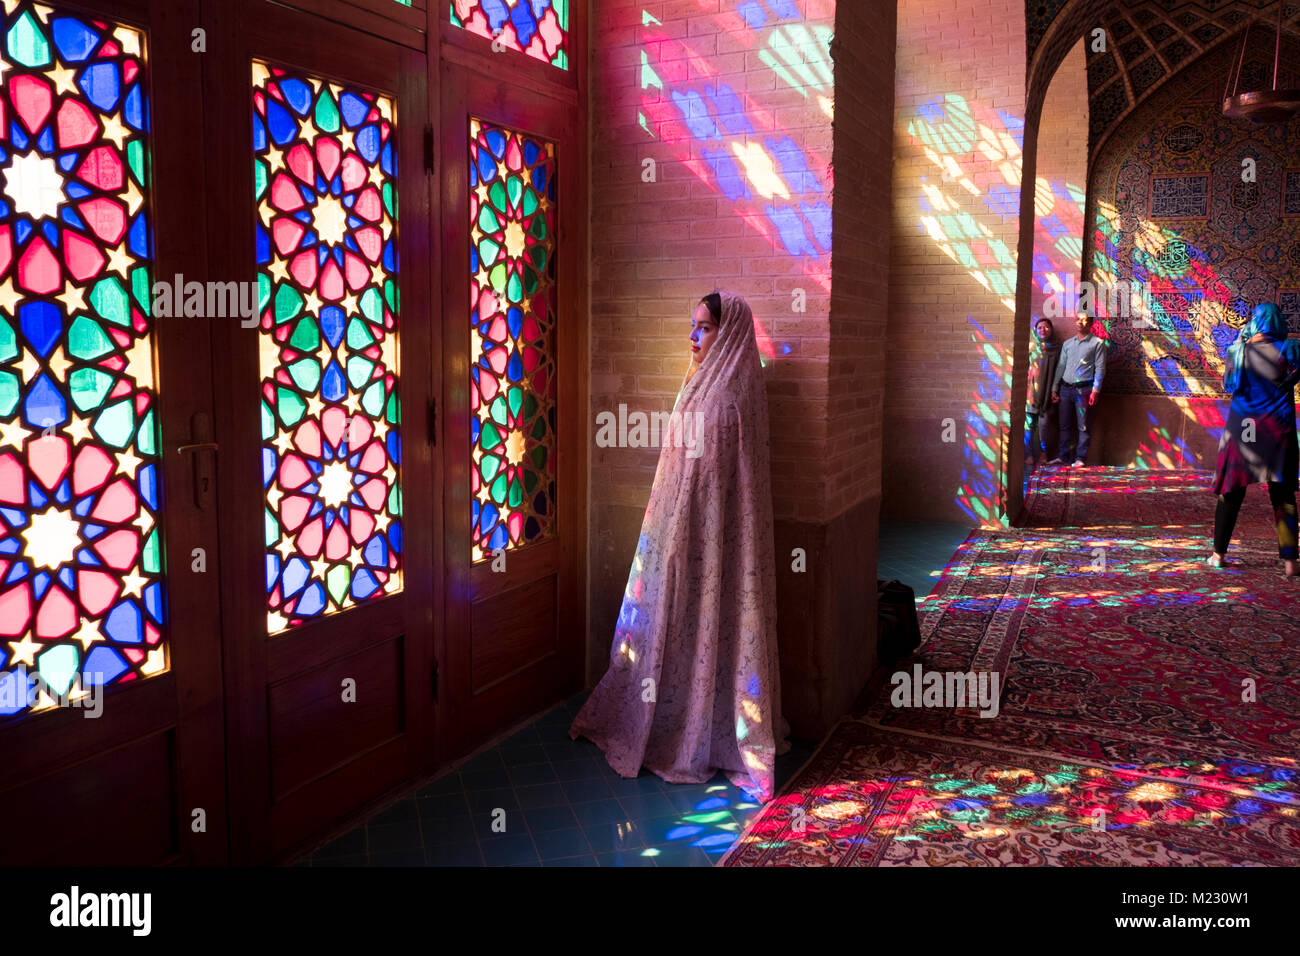 A Tourist stands in the light coming through the stain glass windows of the Nasir al Molk mosque in Shiraz - Stock Image